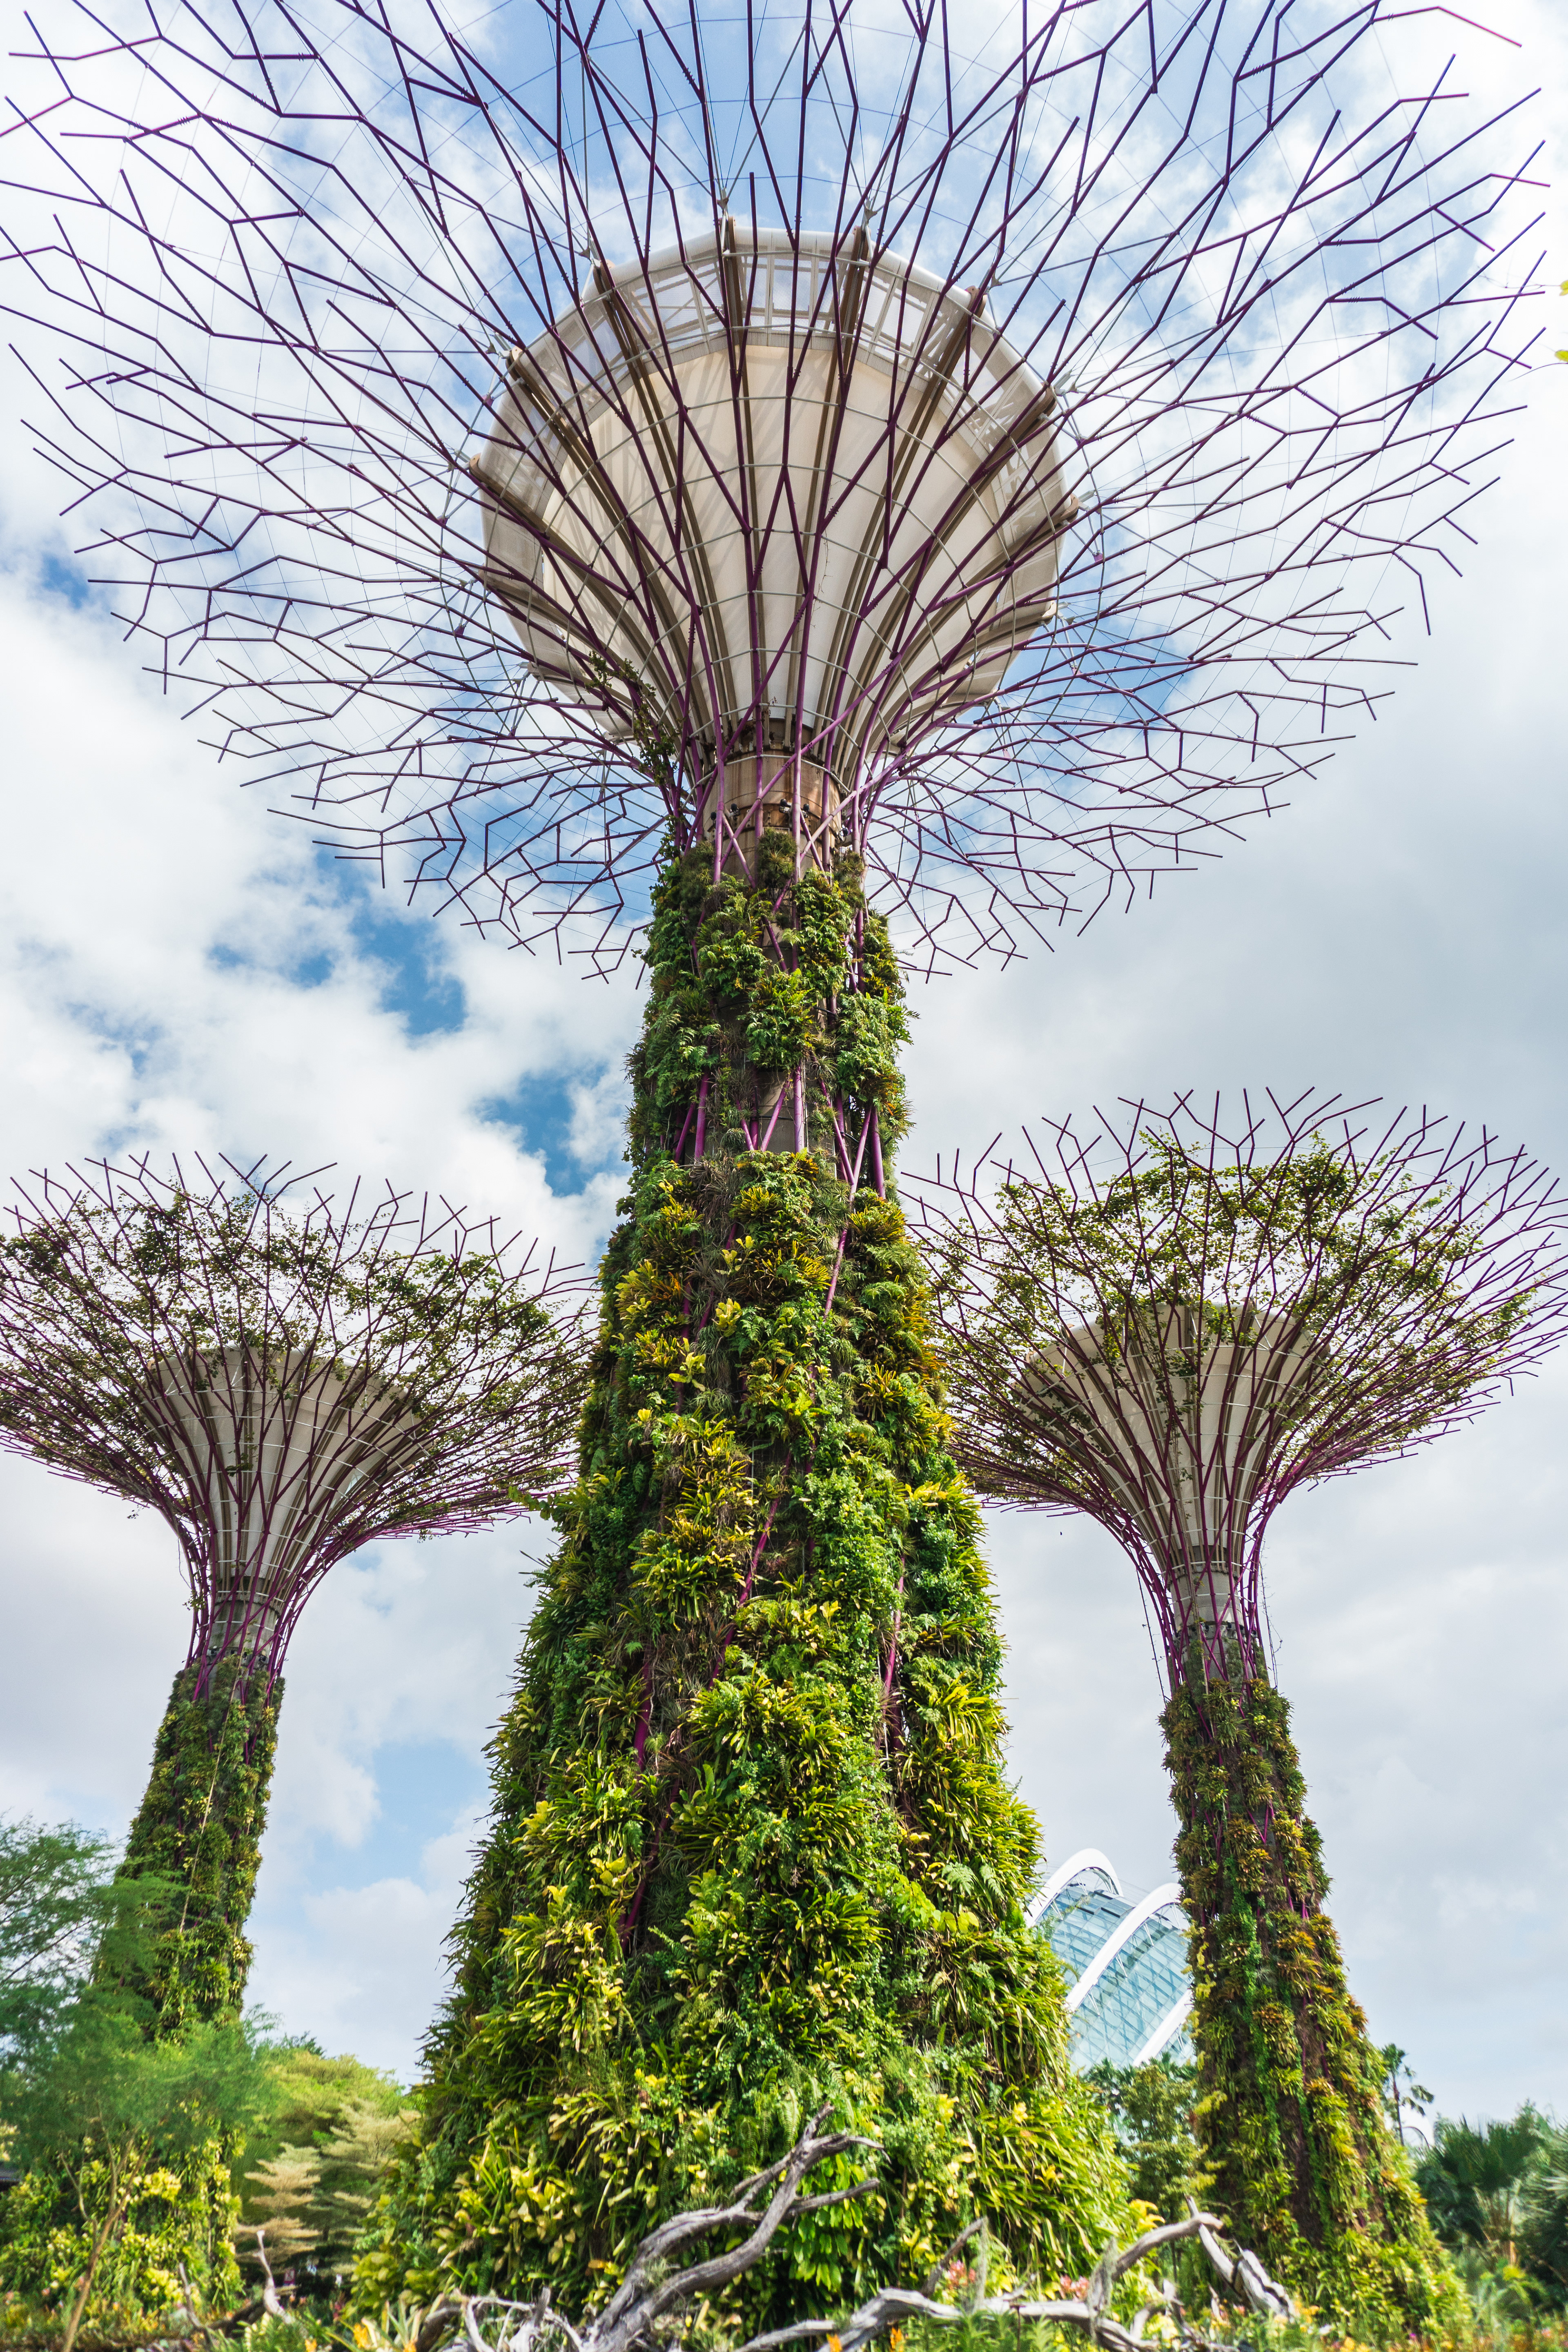 singapore from a garden city to a city in a garden the stated aim is to raise the quality of life by enhancing greenery and flora in the city - Garden By The Bay Bar